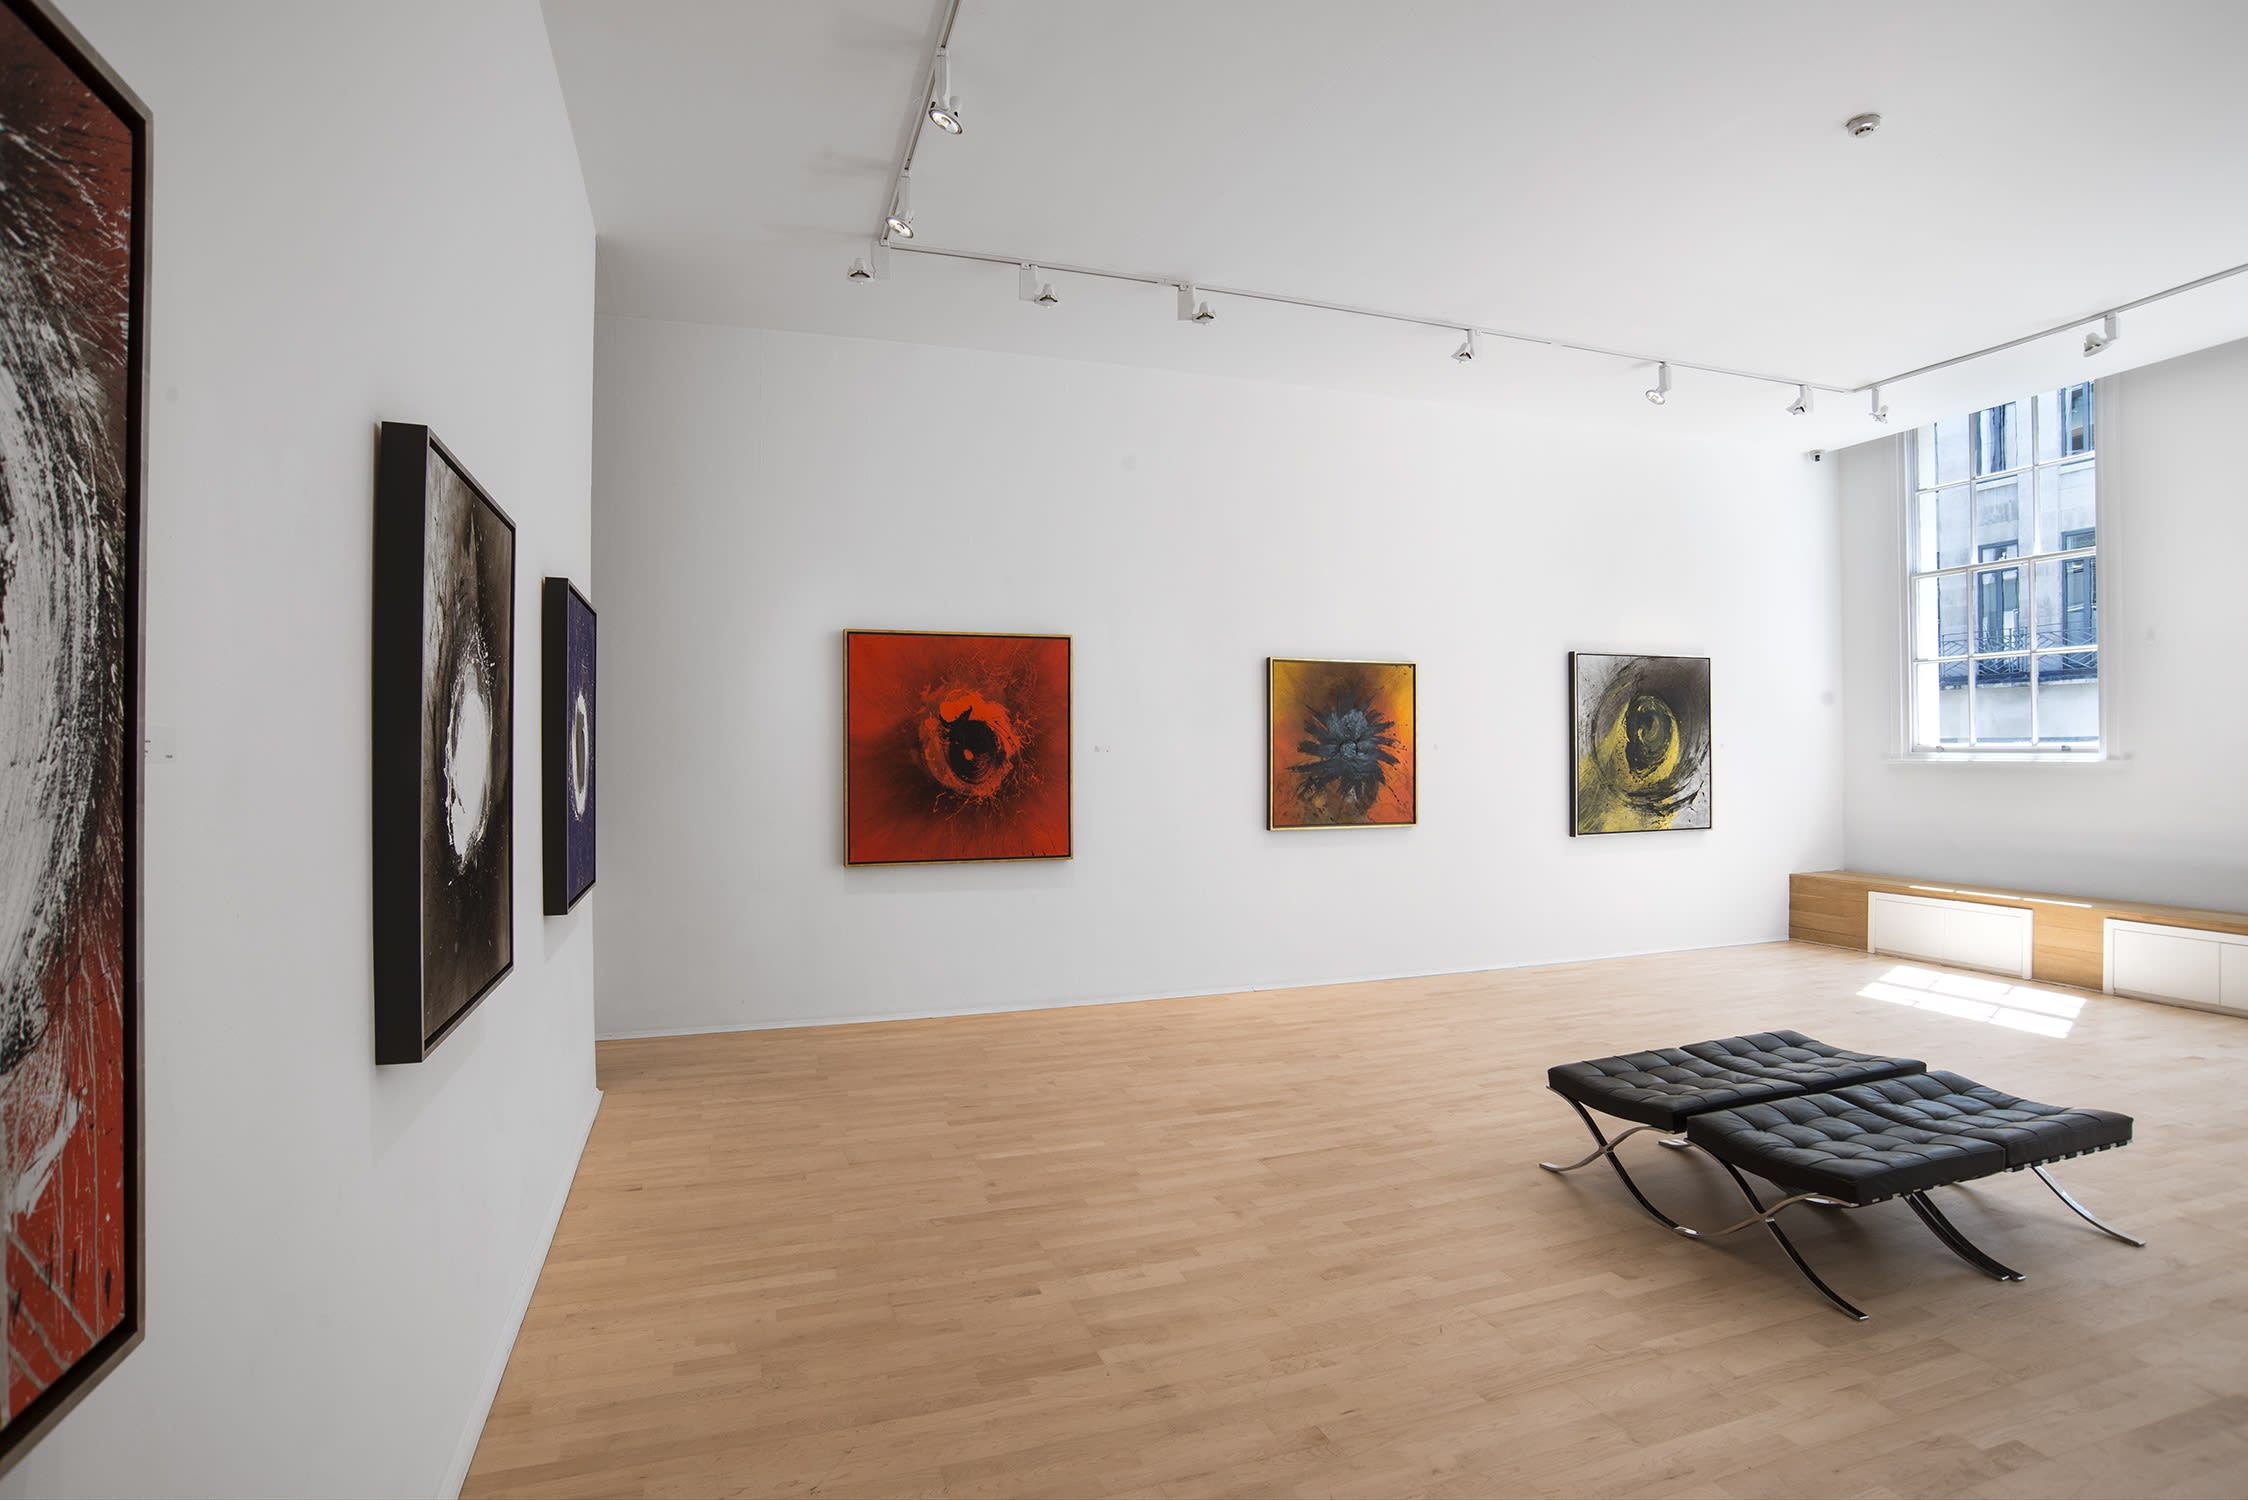 "<span class=""link fancybox-details-link""><a href=""/exhibitions/55/works/image_standalone59/"">View Detail Page</a></span><p>OTTO PIENE 